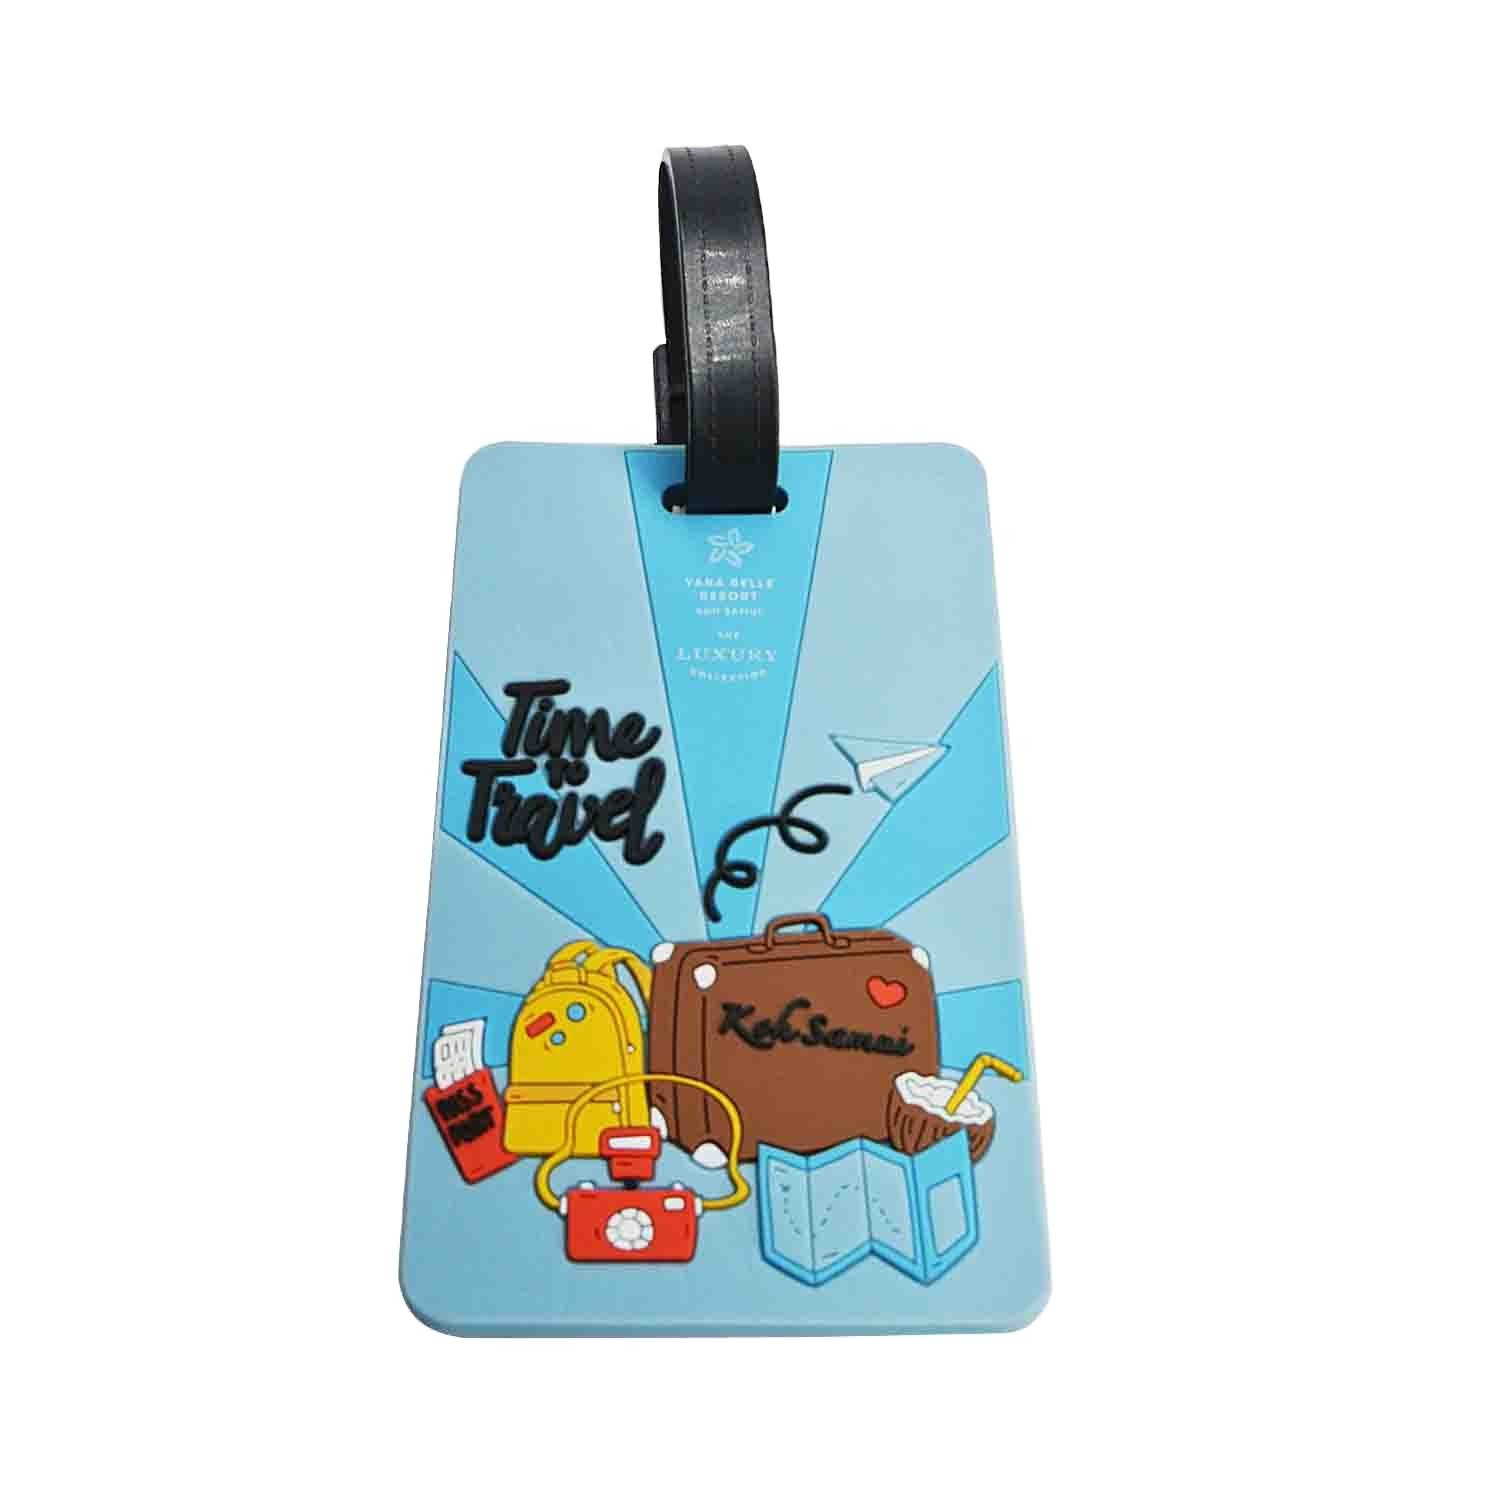 With your own logo luggage tag for suitcase no minimum order